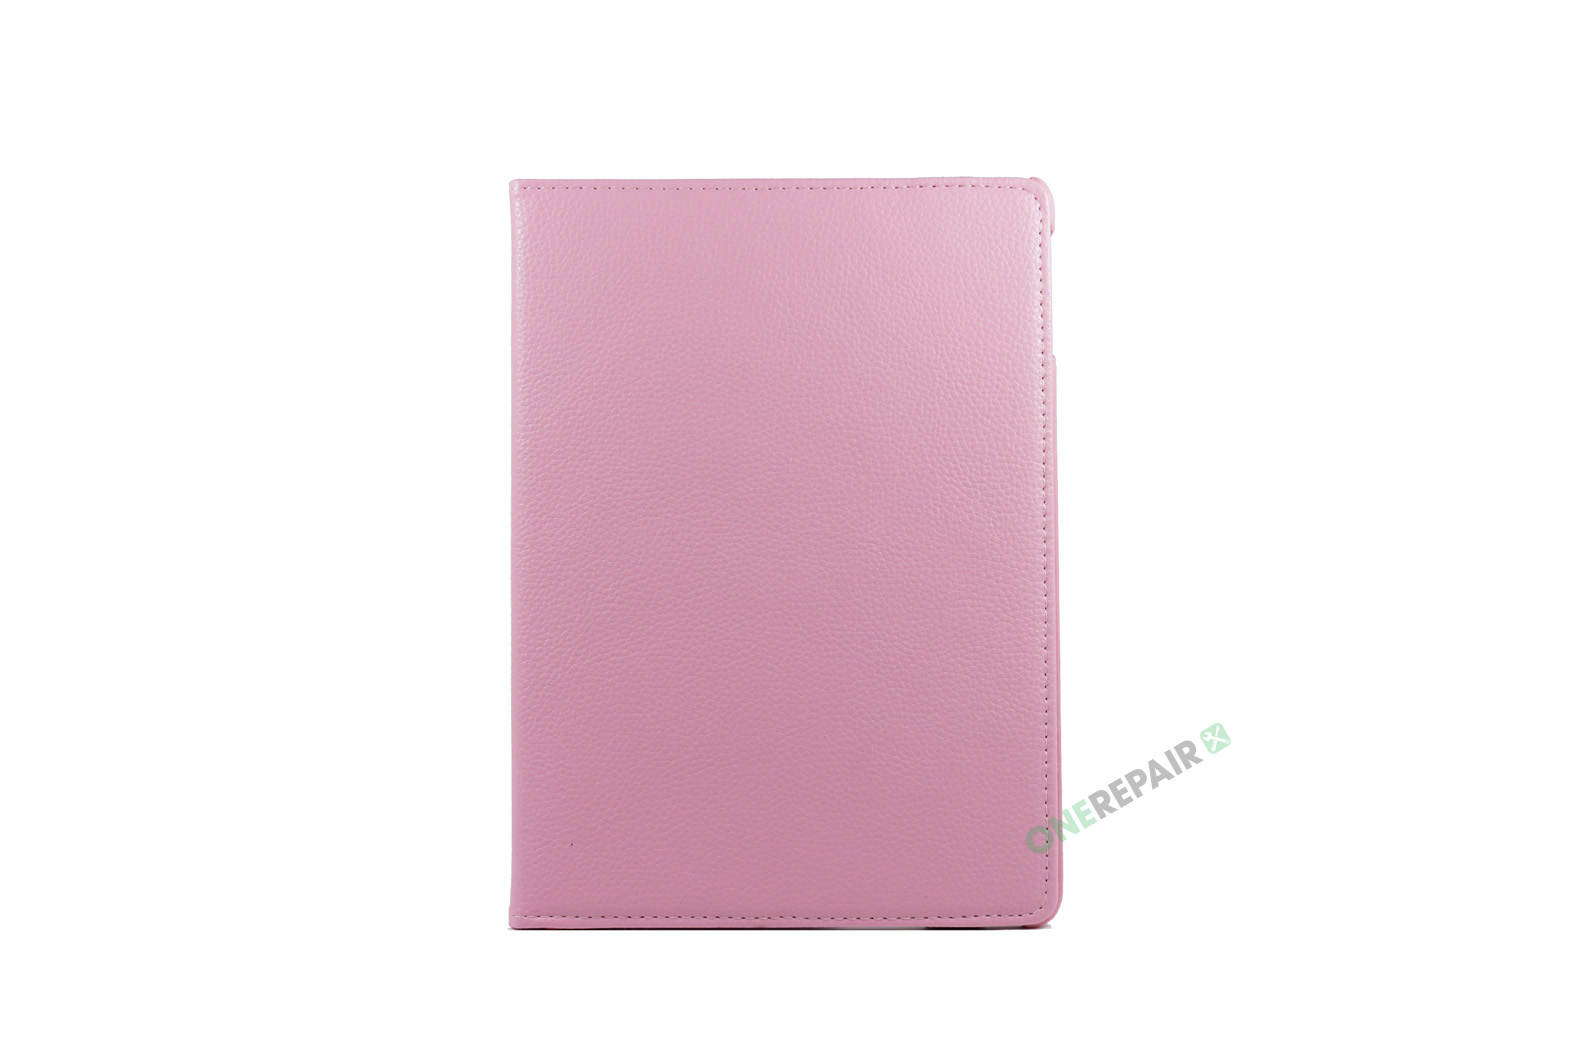 351058_iPad_Air2_2_A1566_A1567_Flipcover_Cover_Lyseroed_Pink_OneRepair_00002